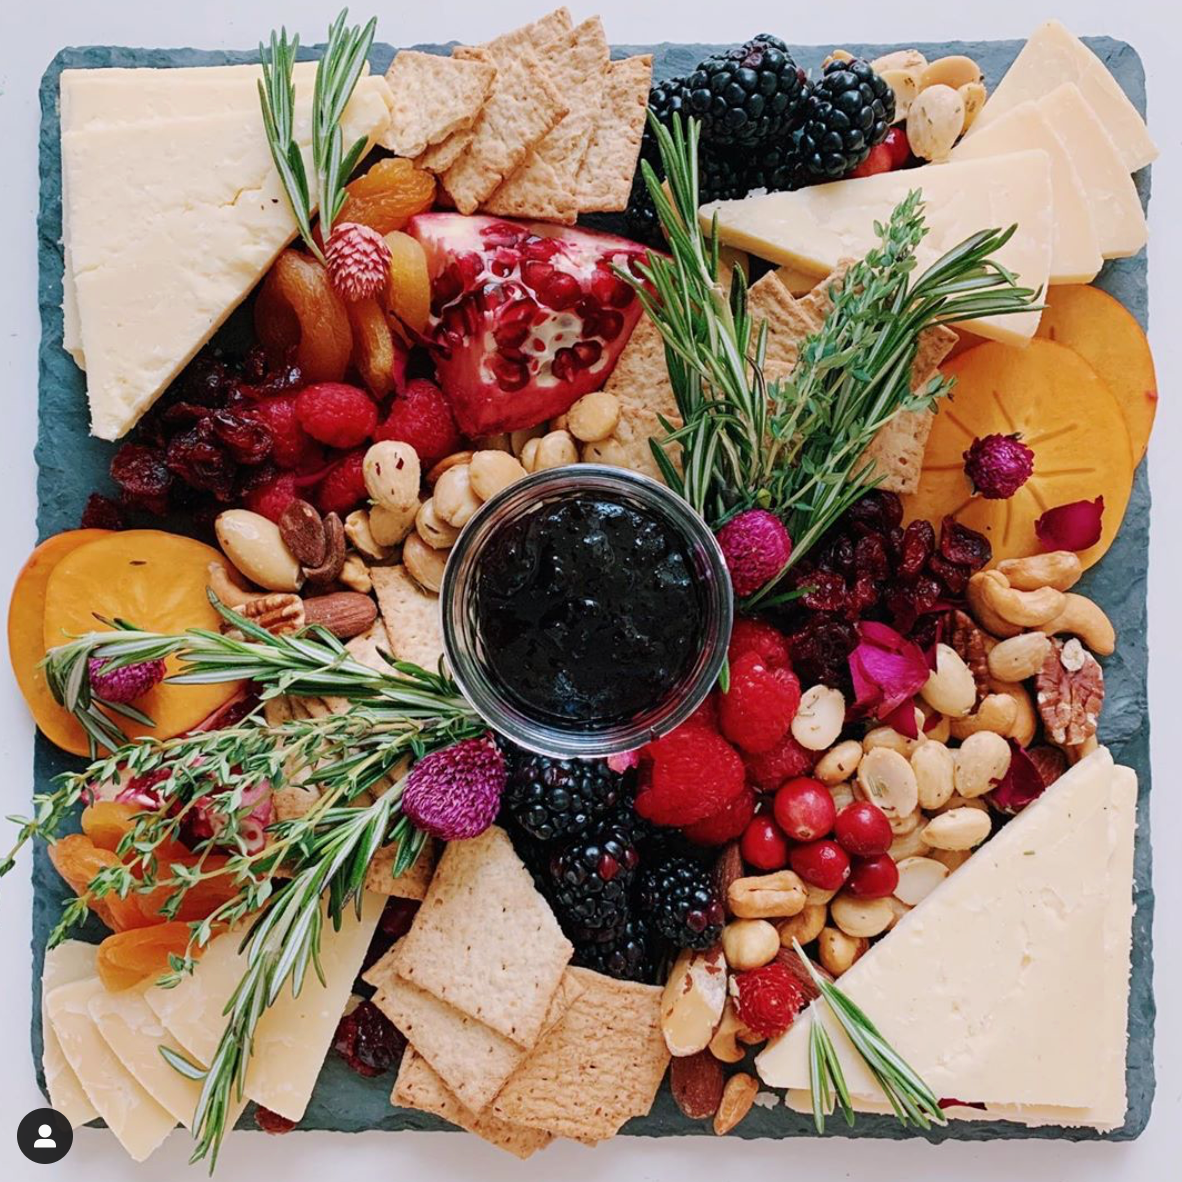 image courtesy of That Cheese Plate